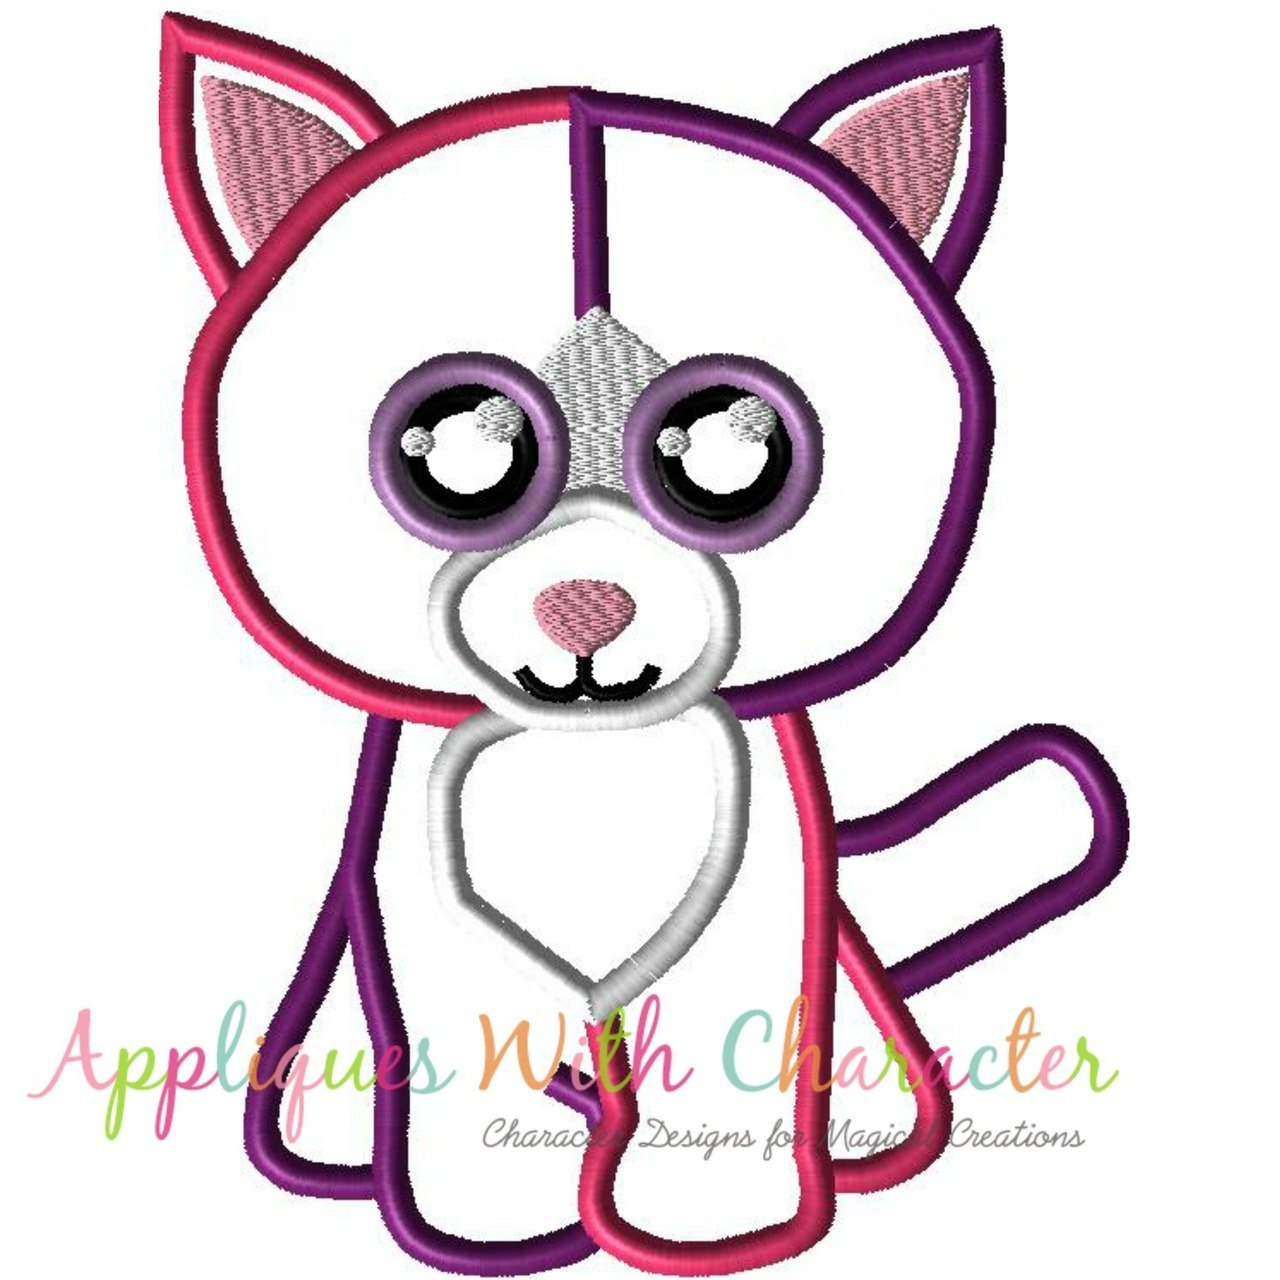 1280x1280 Beanie Boo Pellie Cat Applique Design By Appliques With Character